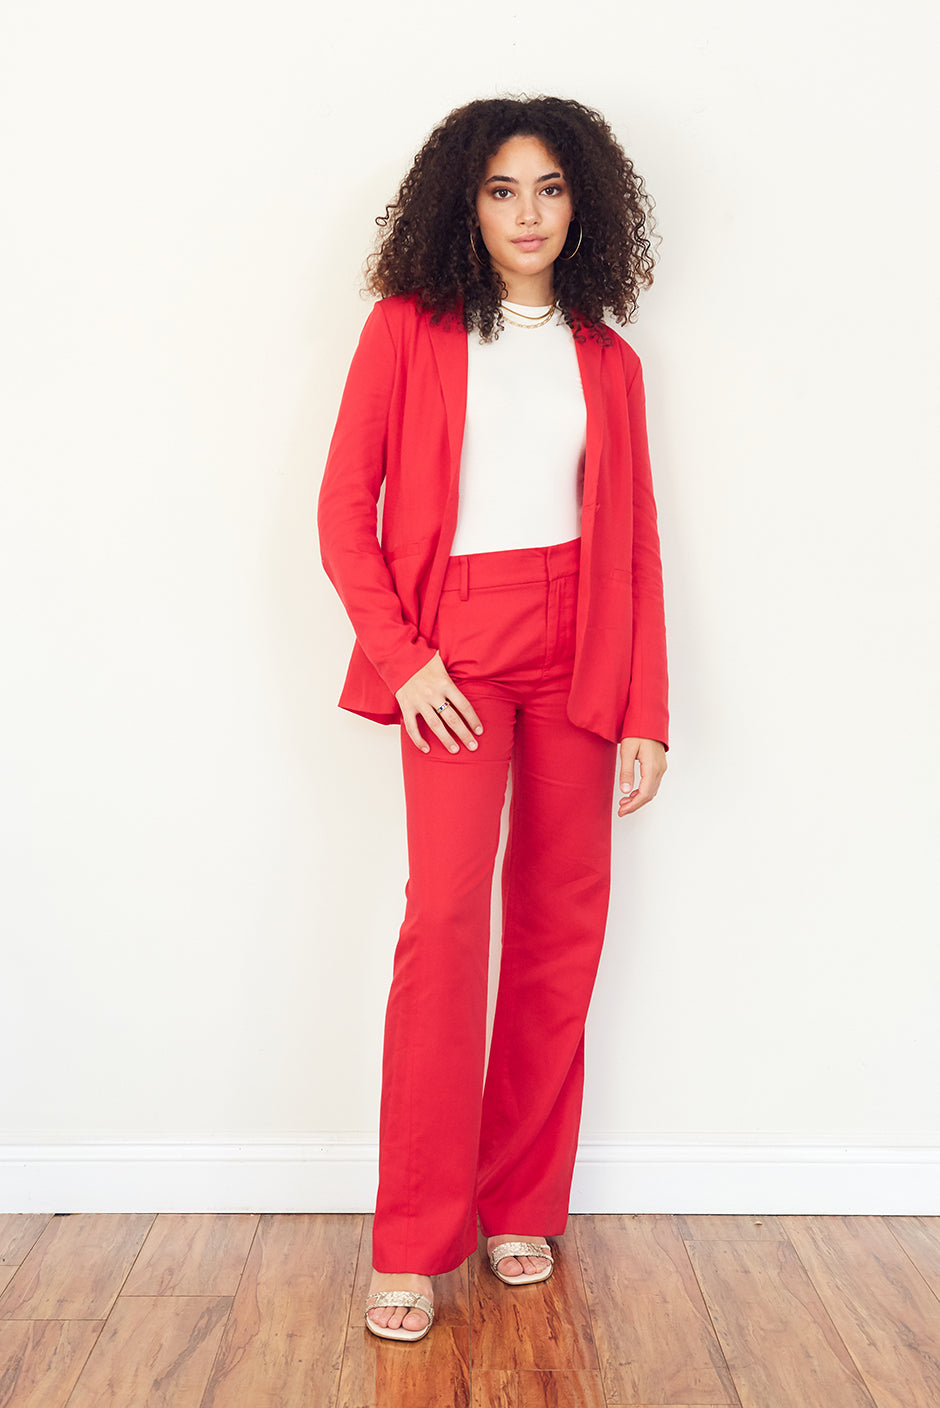 Day to Night Trouser in Cherry Punch front view by Paneros Clothing